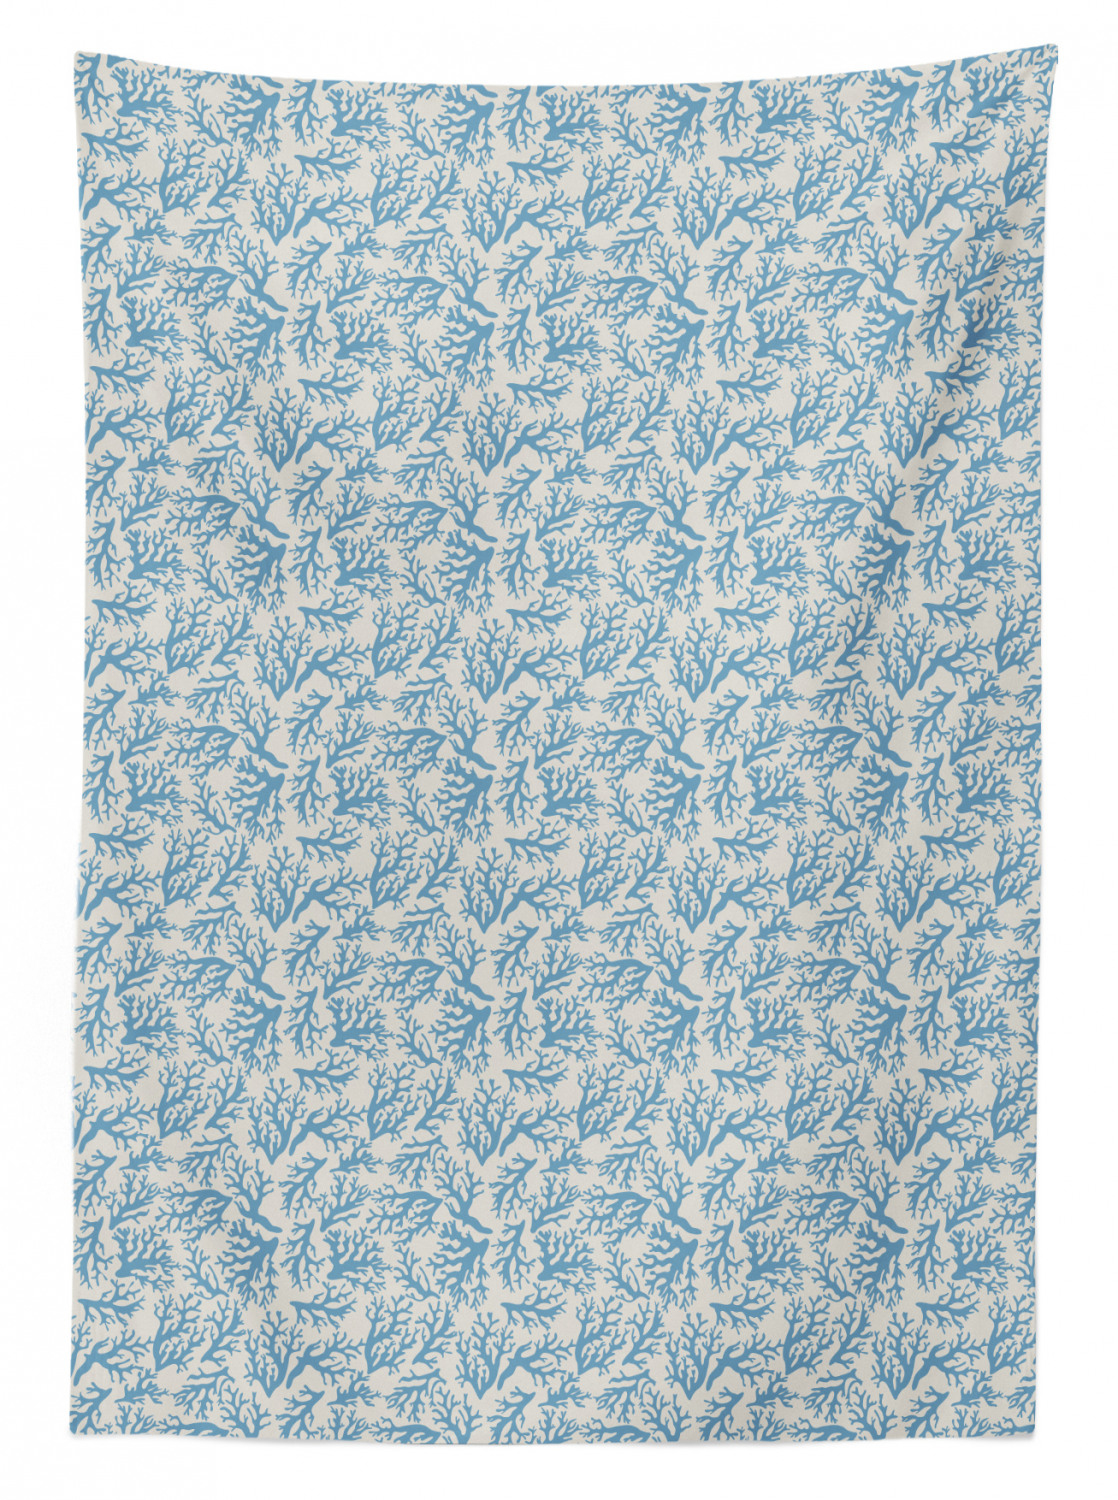 thumbnail 26 - Ambesonne Marine Pattern Tablecloth Table Cover for Dining Room Kitchen